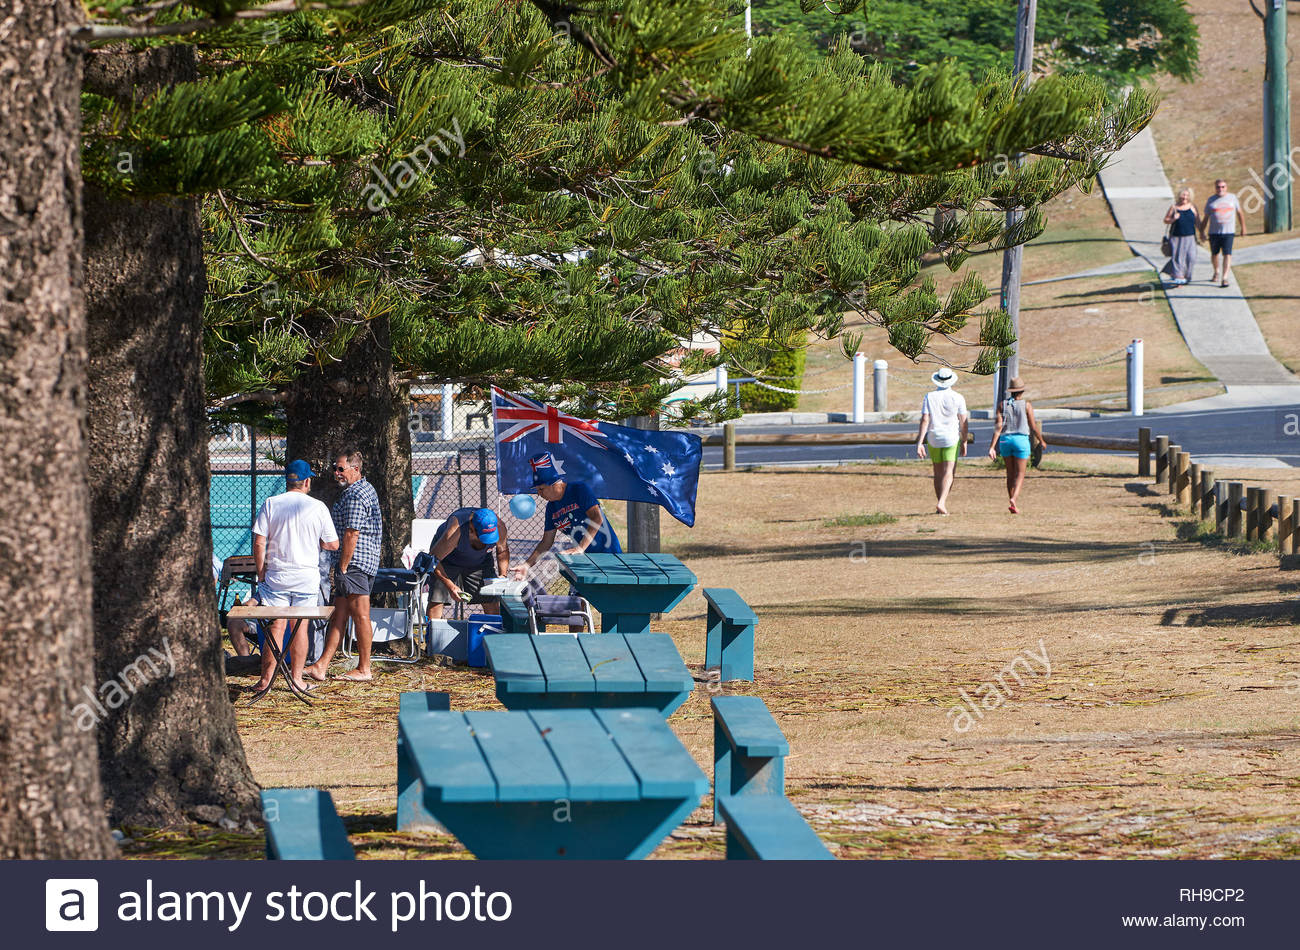 A barbecue near the beach, with passers-by and picnic tables and an Aussie flag; on Australia Day - or Invasion Day - in Yamba, NSW, Australia. - Stock Image